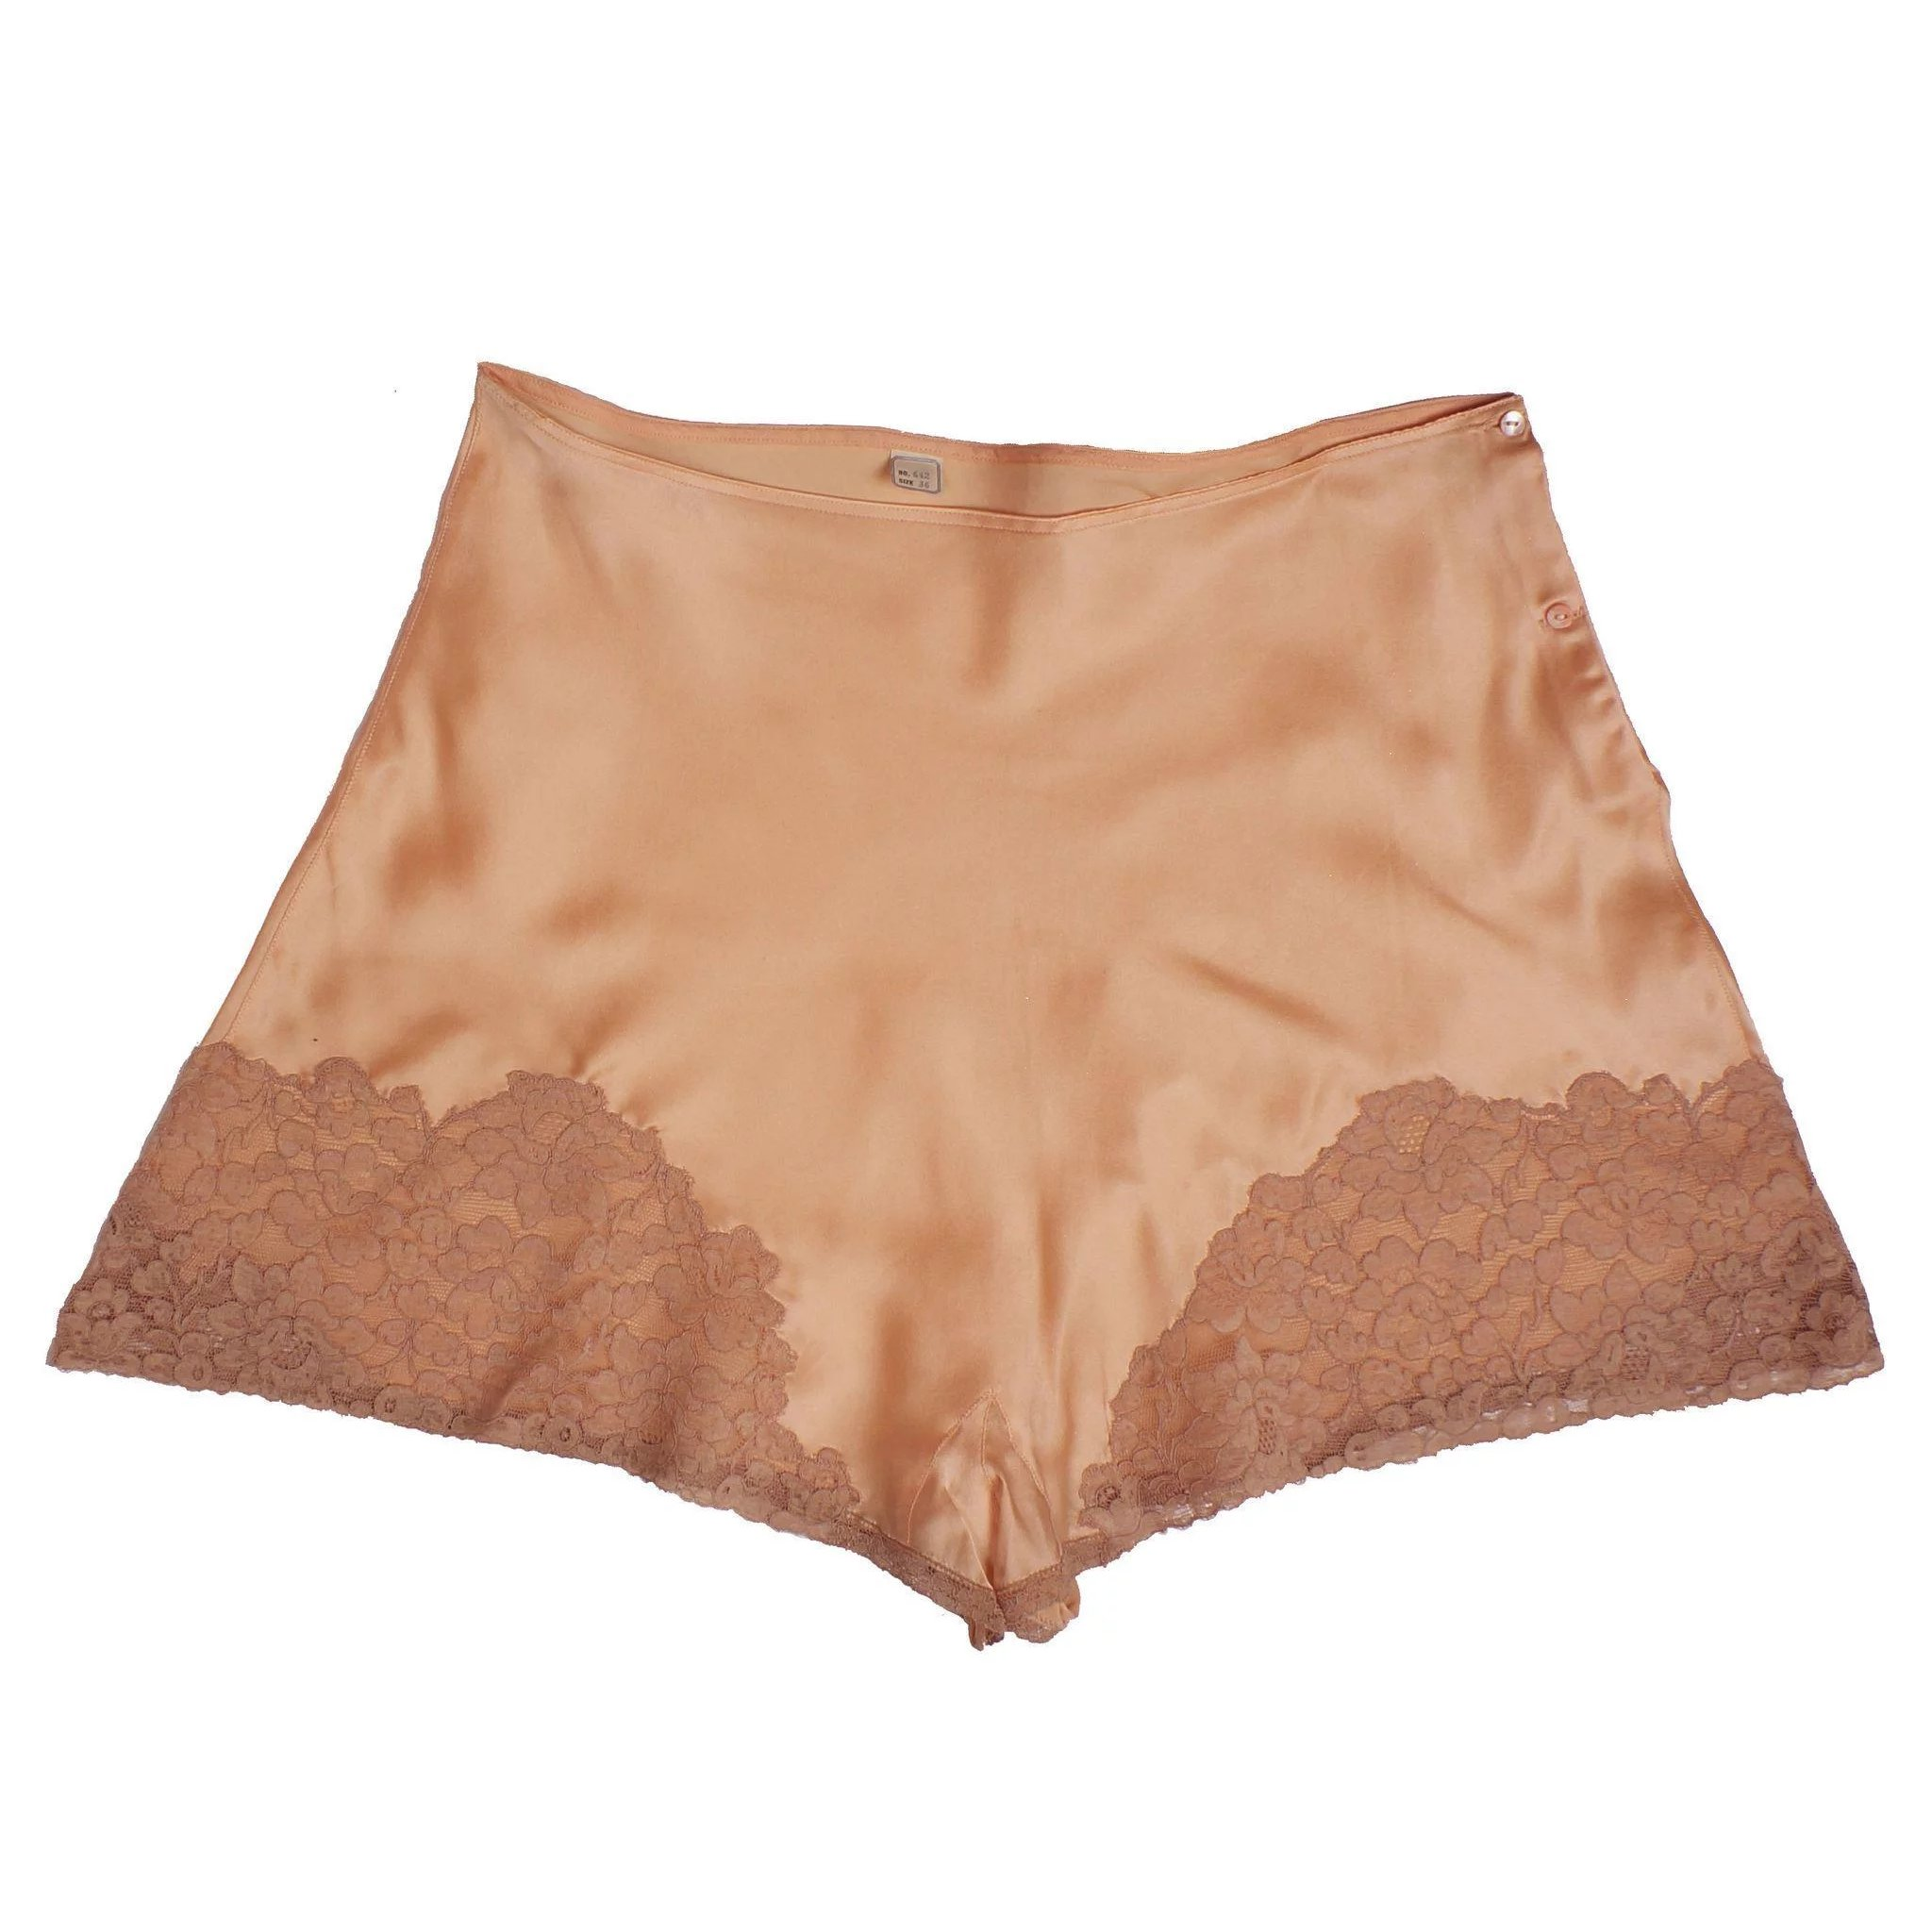 56d9a55fc Vintage 1930s Peach Silk and Lace Tap Pants - Step-In Panties - Unused    Poppy s Vintage Clothing